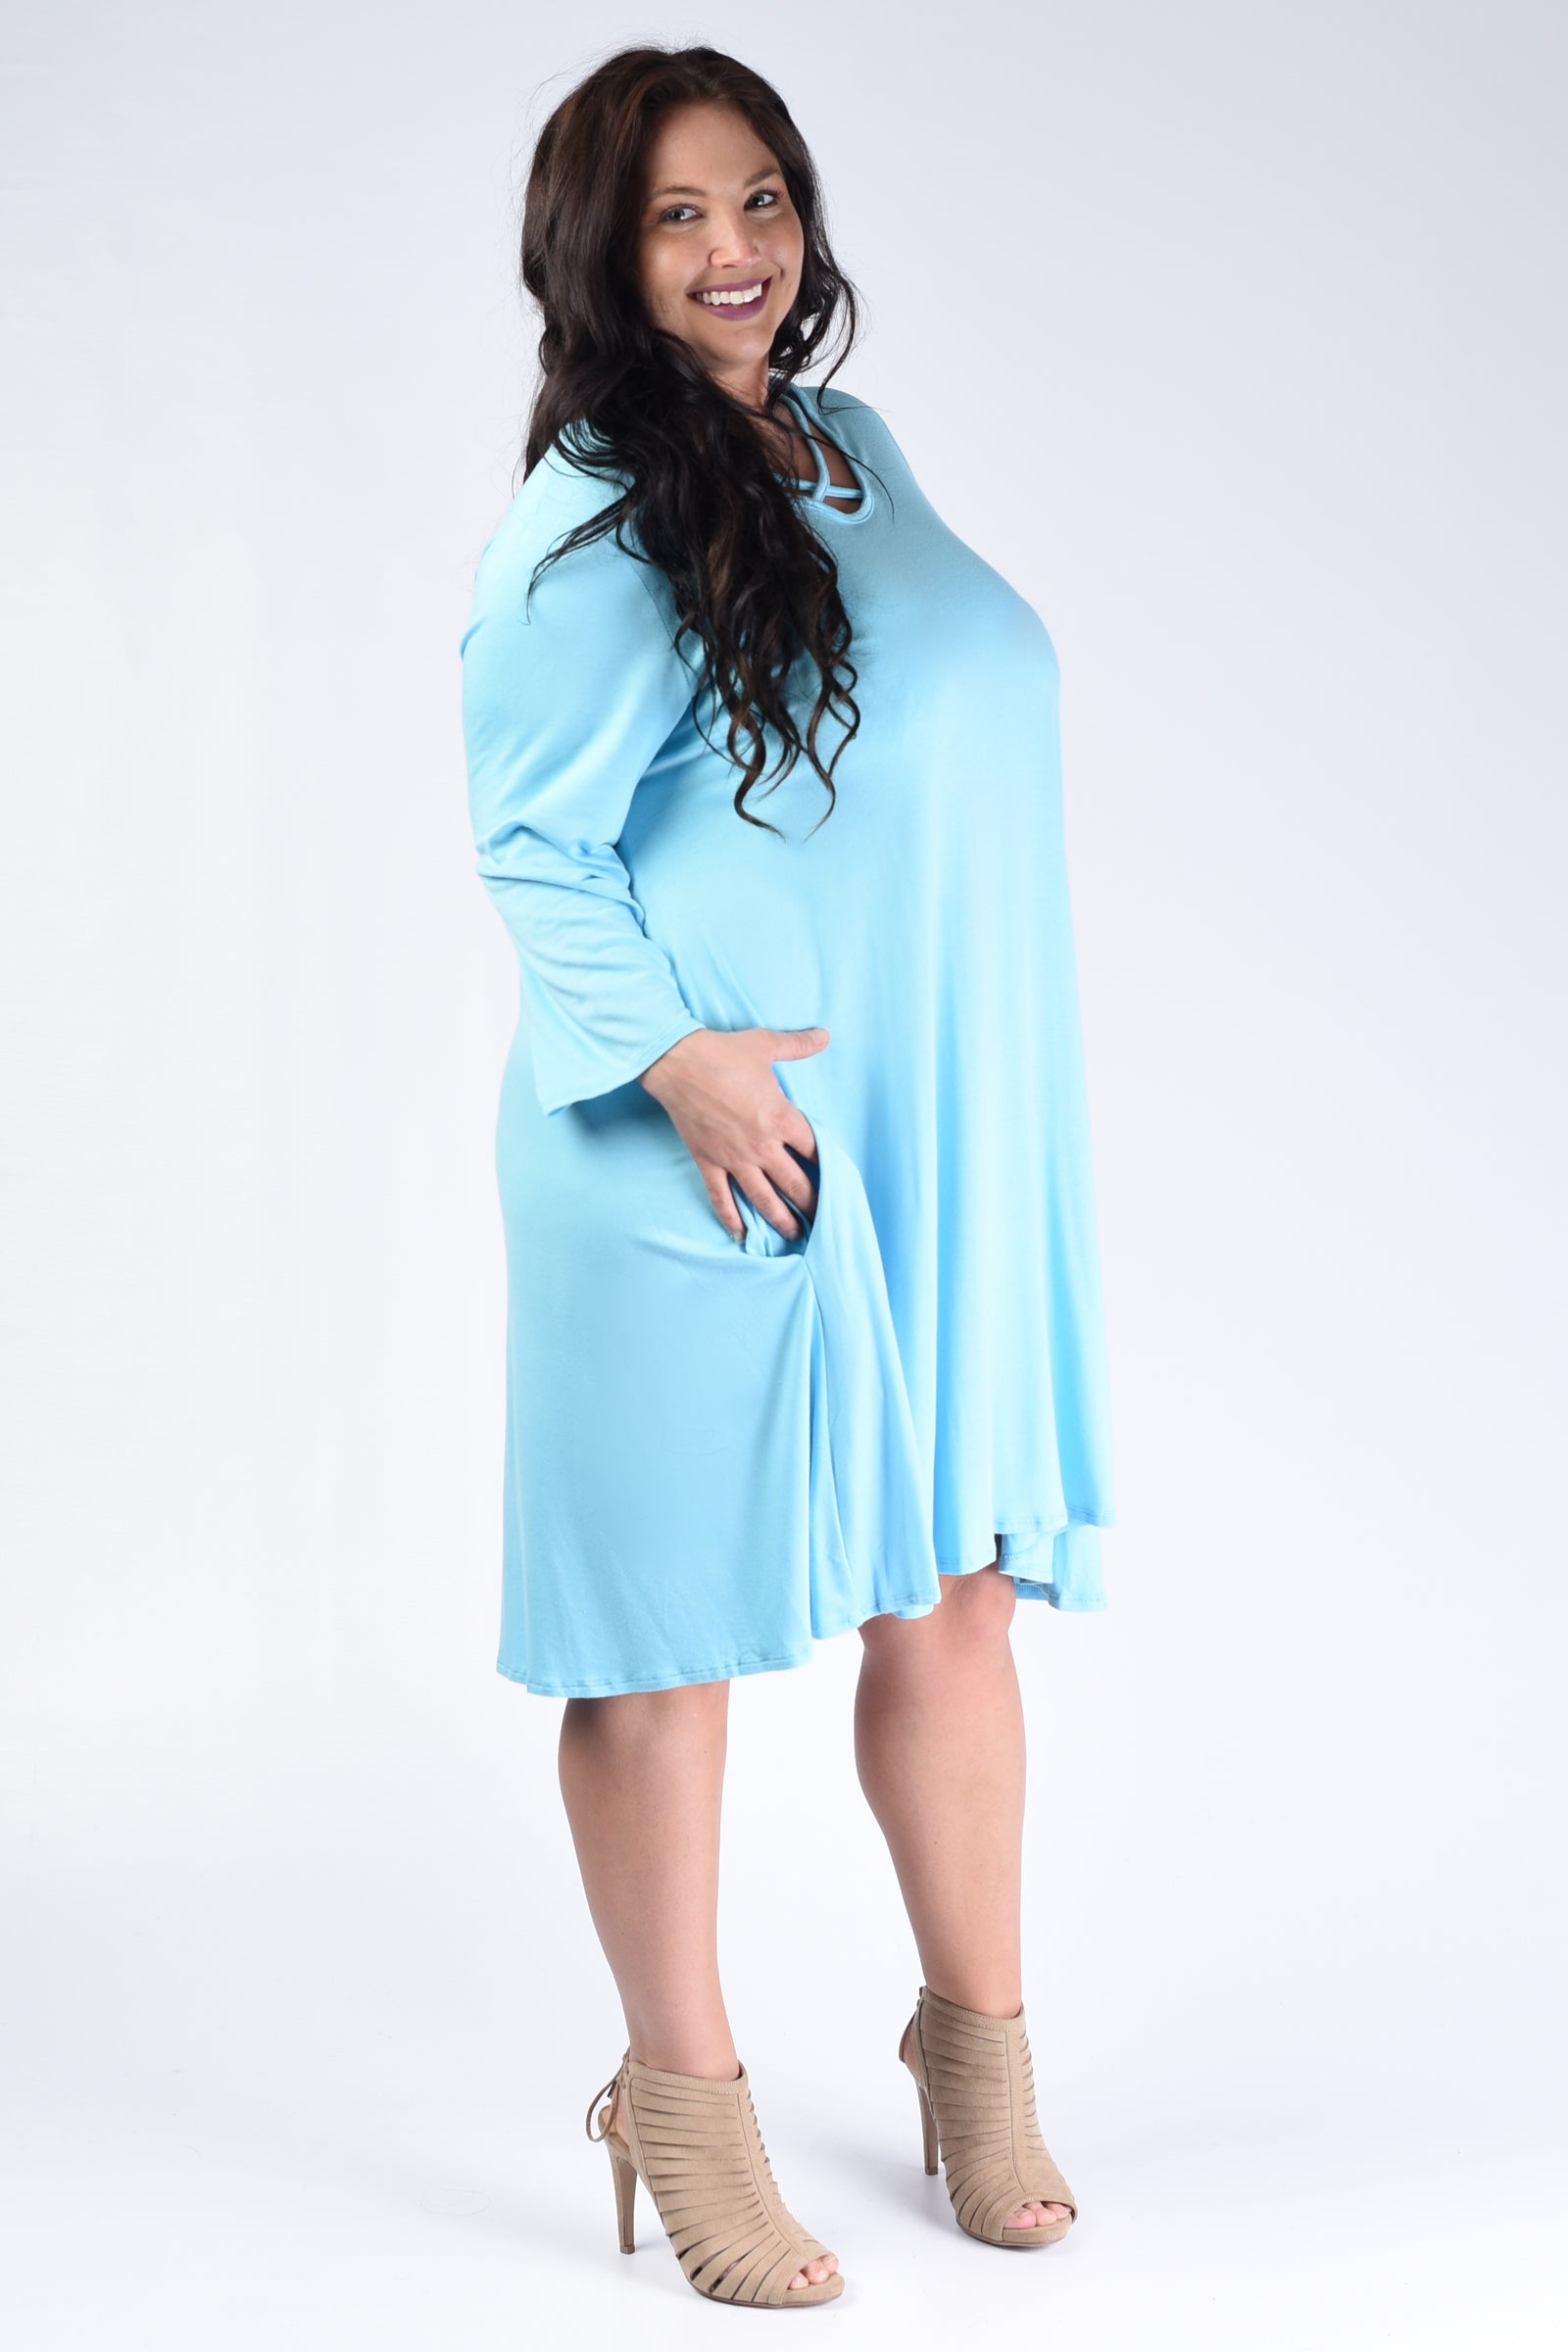 Aqua Corset Bust Pocket Dress - www.mycurvystore.com - Curvy Boutique - Plus Size